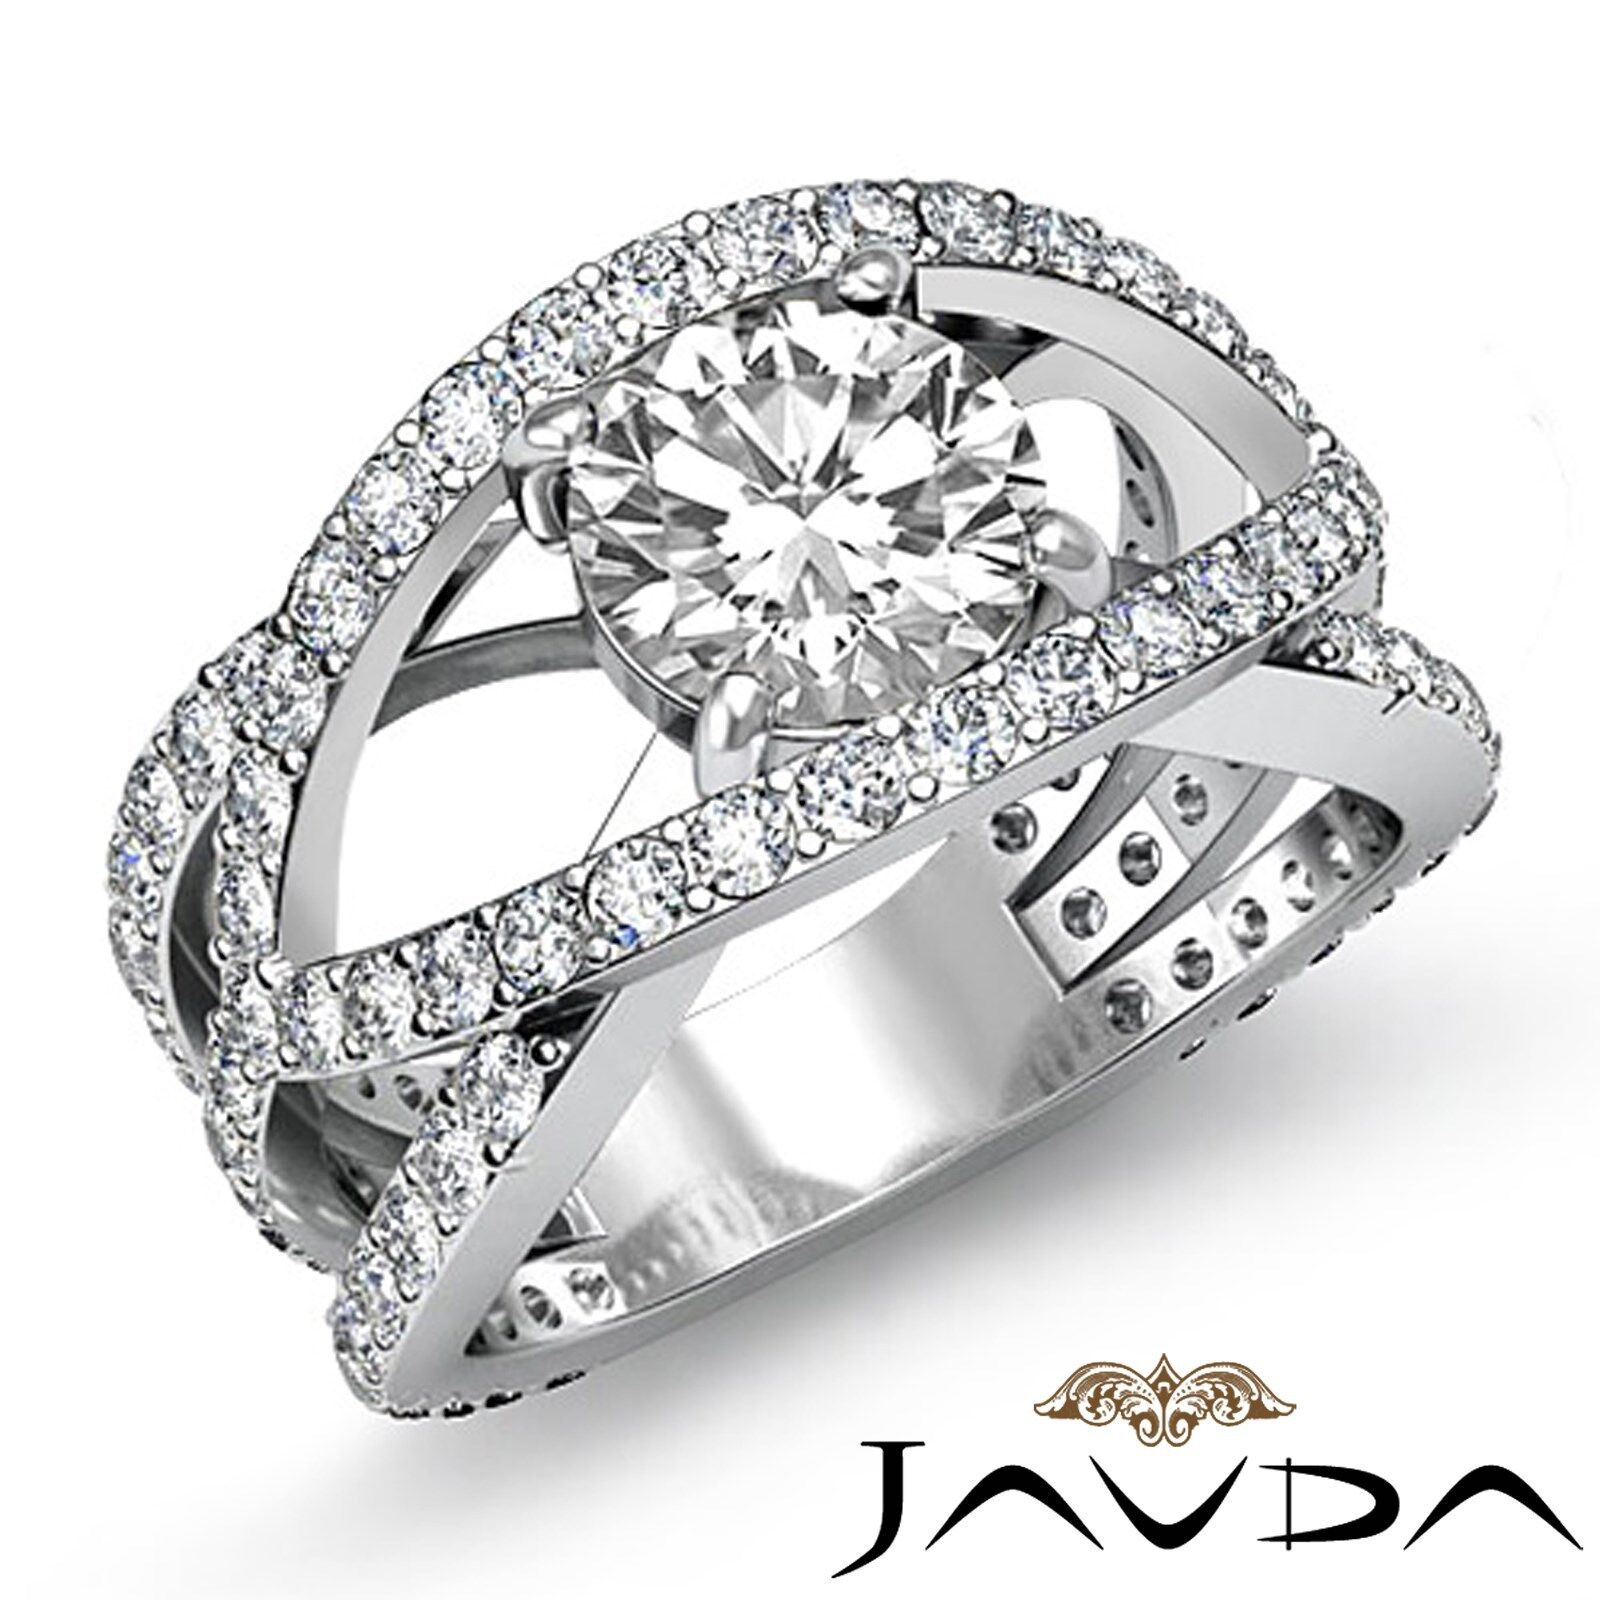 Bypass Design Micro Pave Women's Round Diamond Engagement Ring GIA F VS1 2.7 Ct